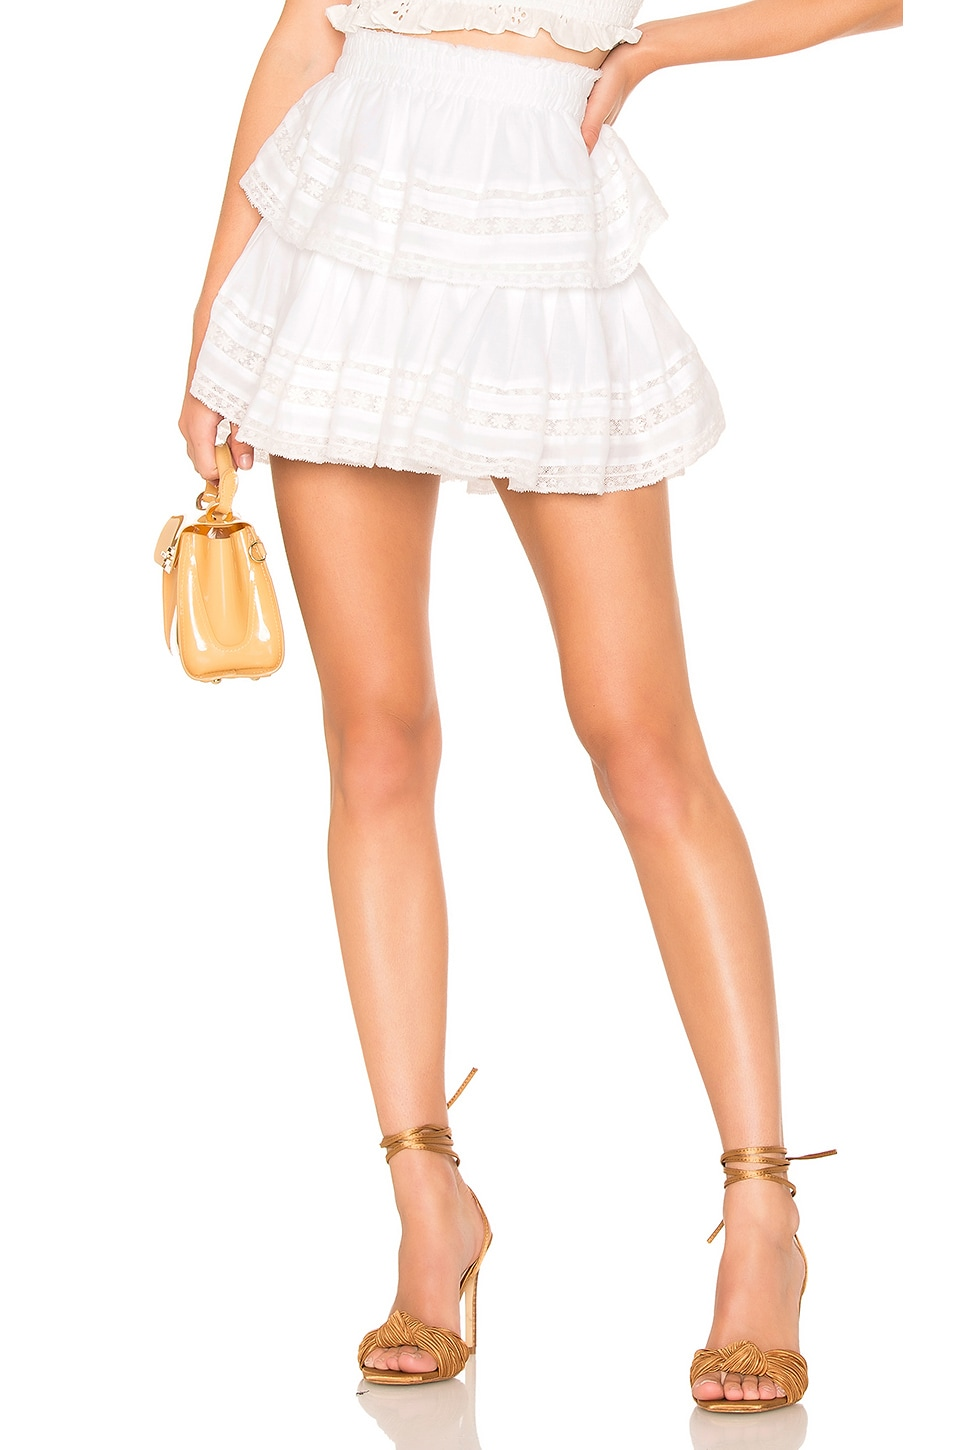 LoveShackFancy Ruffle Mini Skirt in White